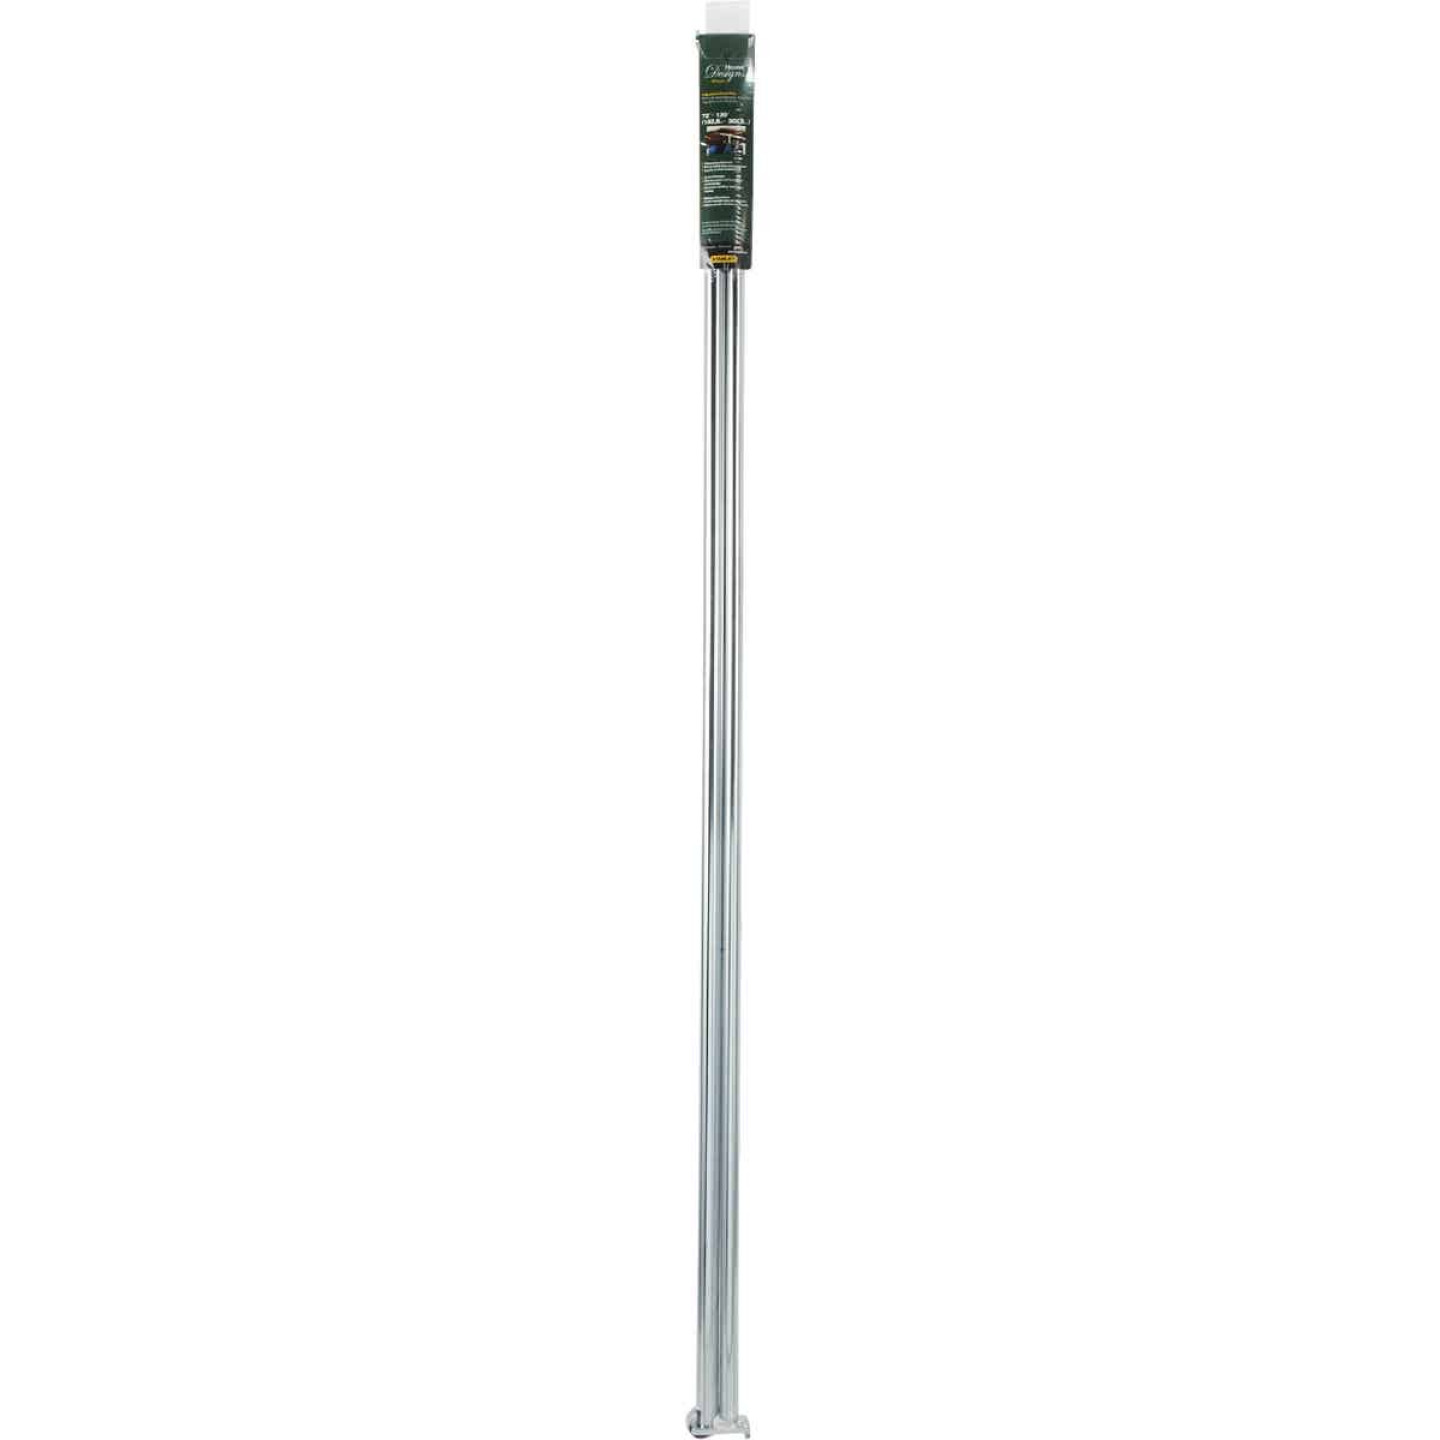 National 72 In. To 120 In. Adjustable Closet Rod, Chrome Image 2